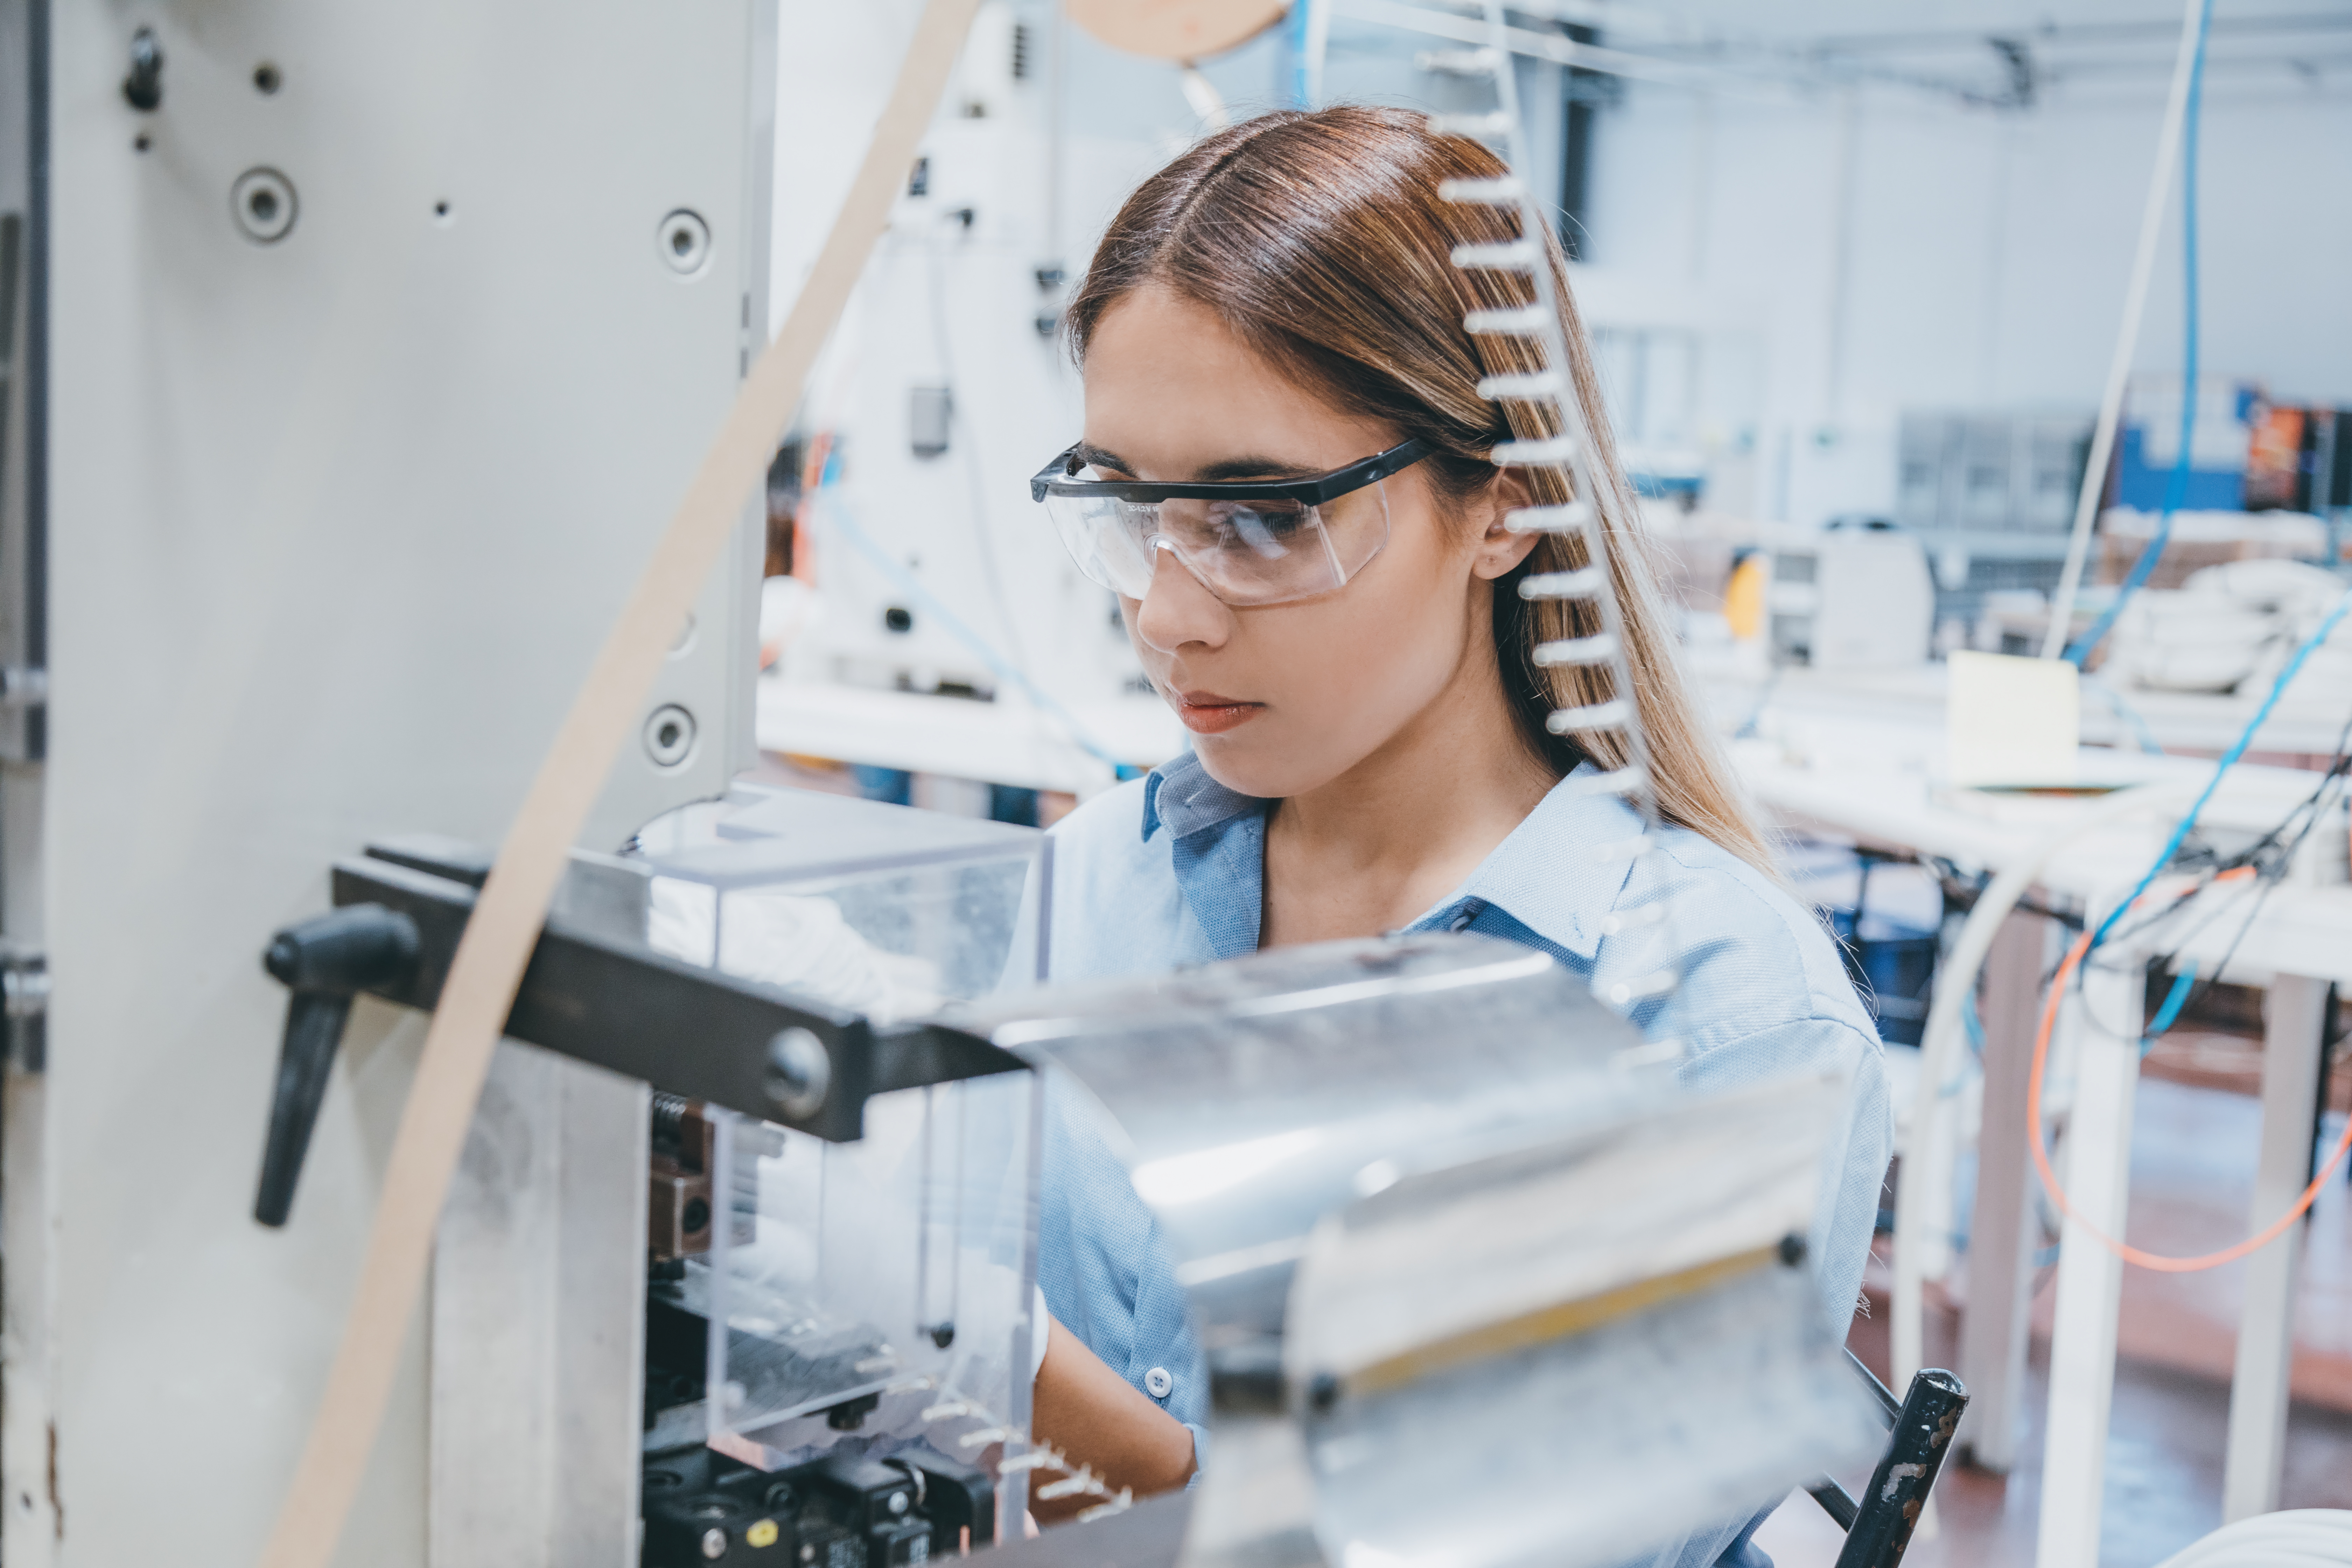 6 Female Engineers You Should Know